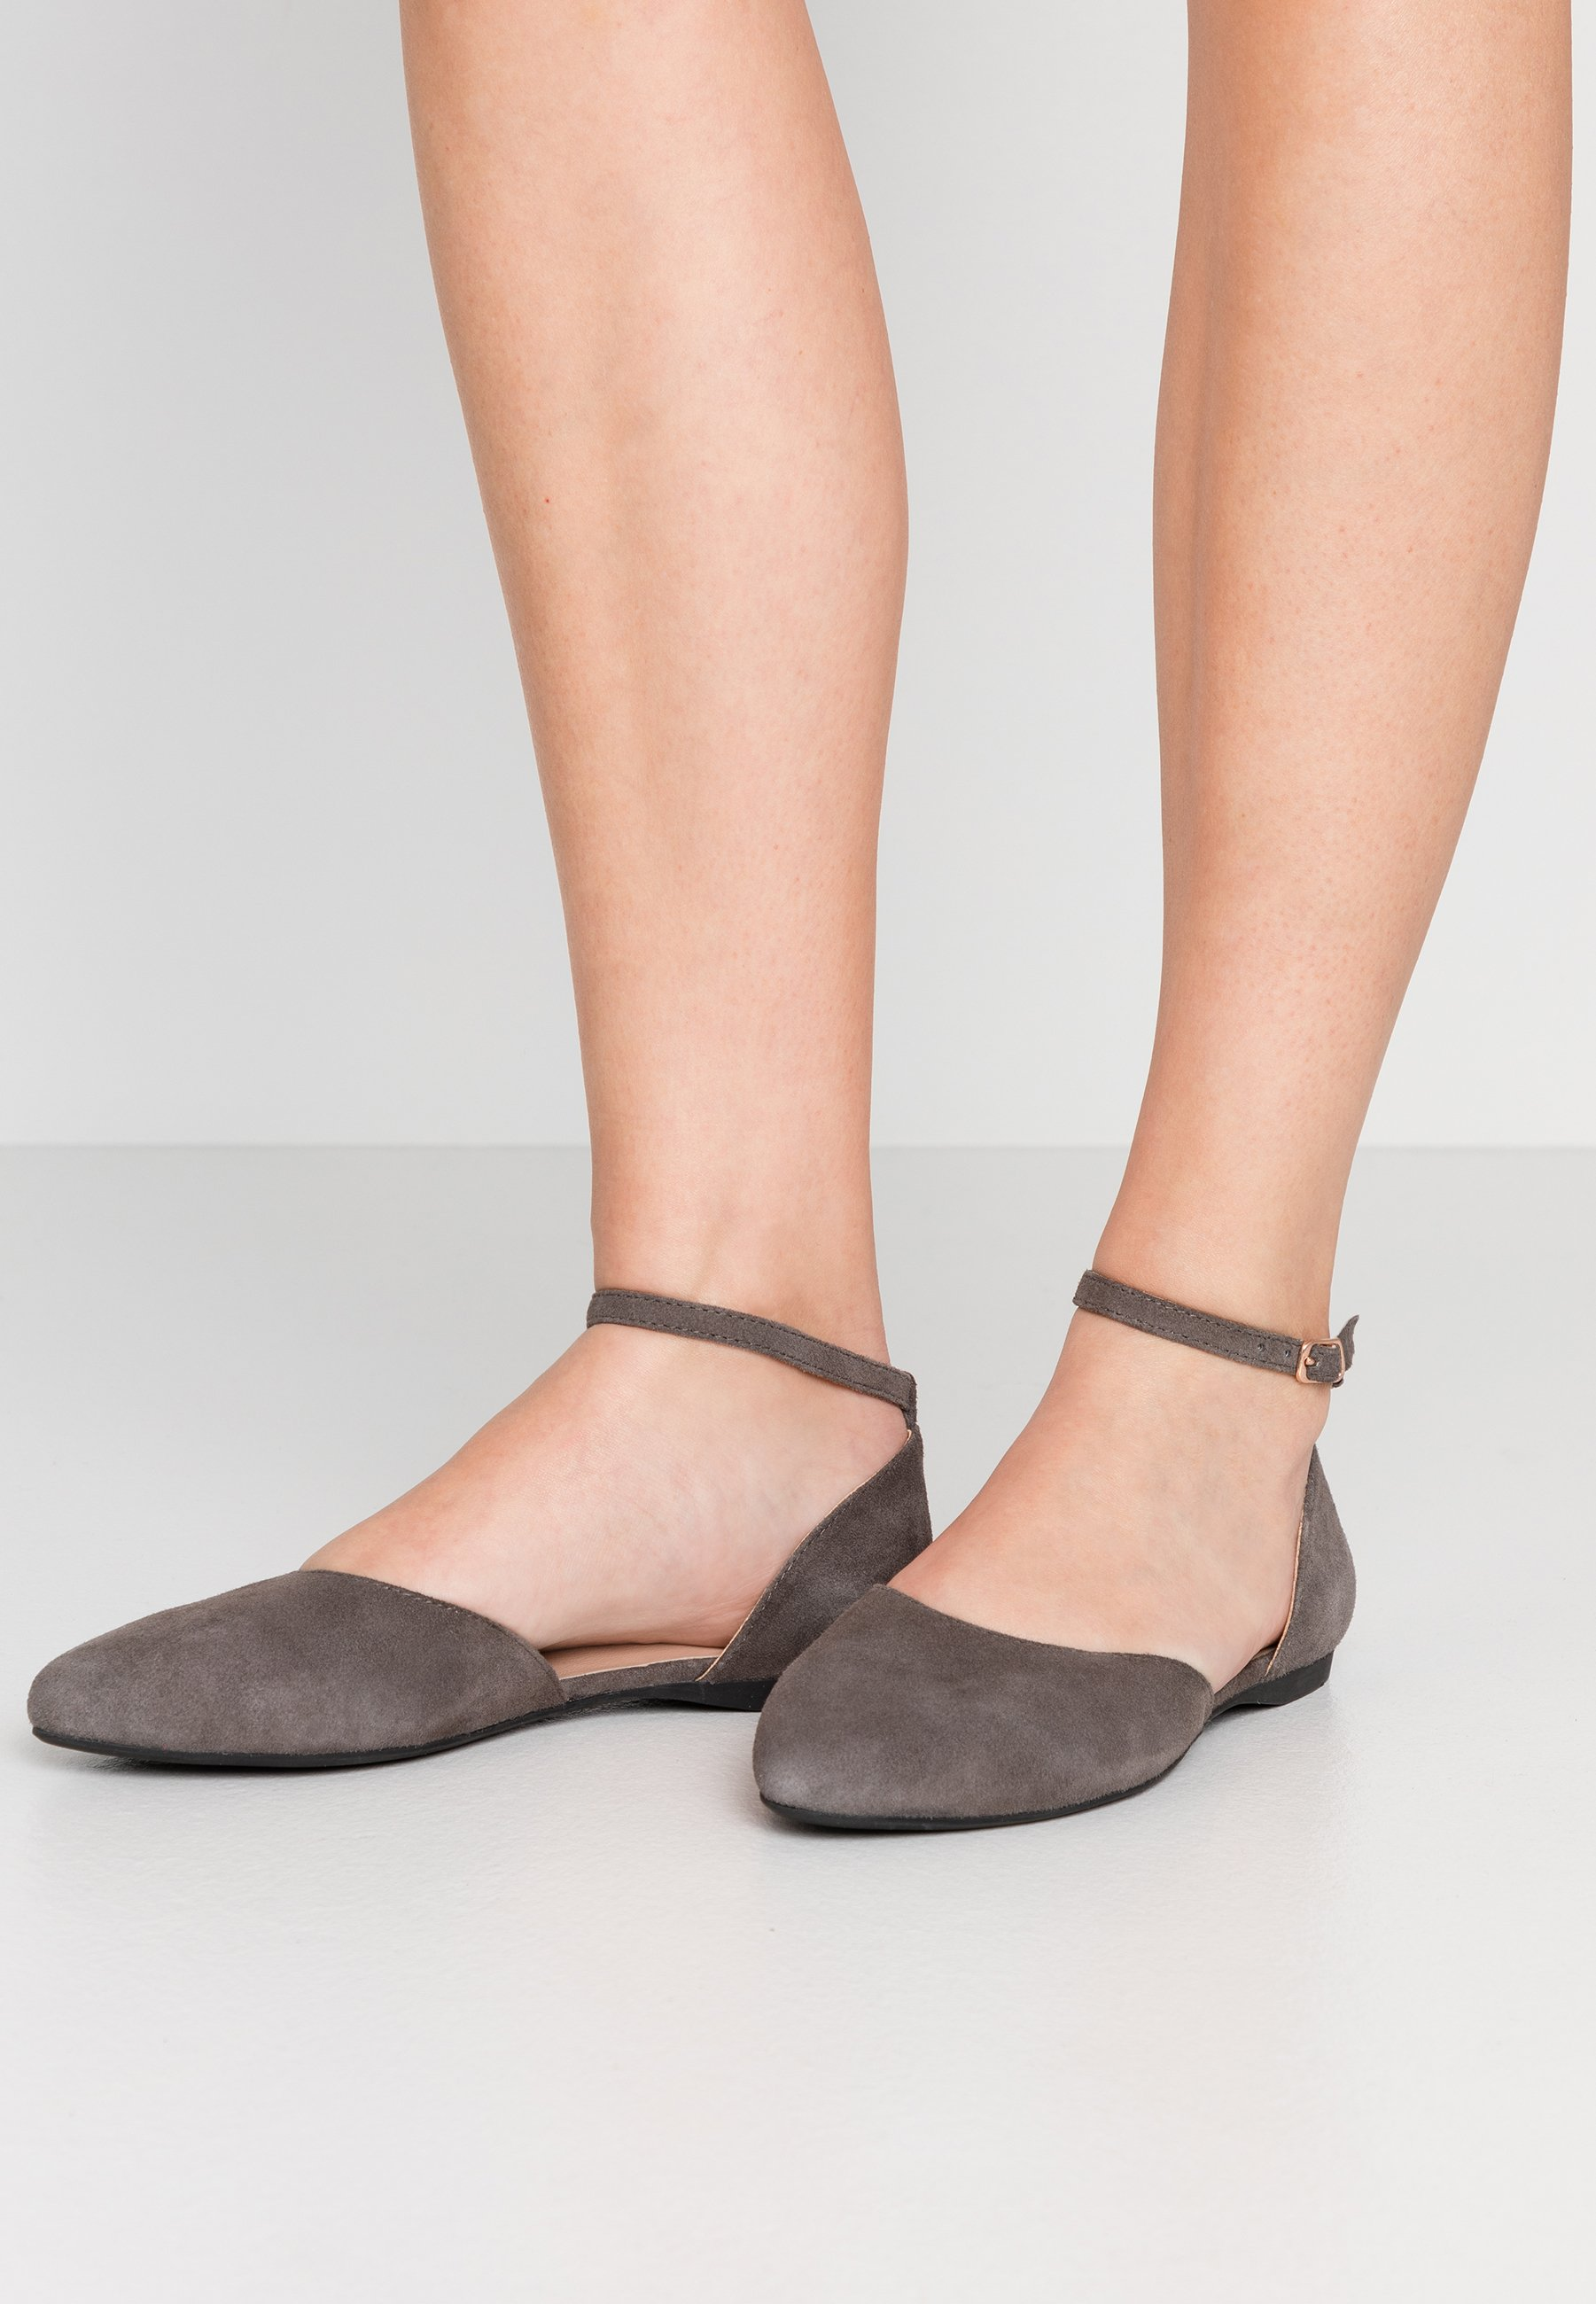 For Cheap Best Supplier Women's Shoes Anna Field Wide Fit LEATHER ANKLE STRAP BALLET PUMPS Ankle strap ballet pumps dark grey 71kwa2tEN tALWEawZt